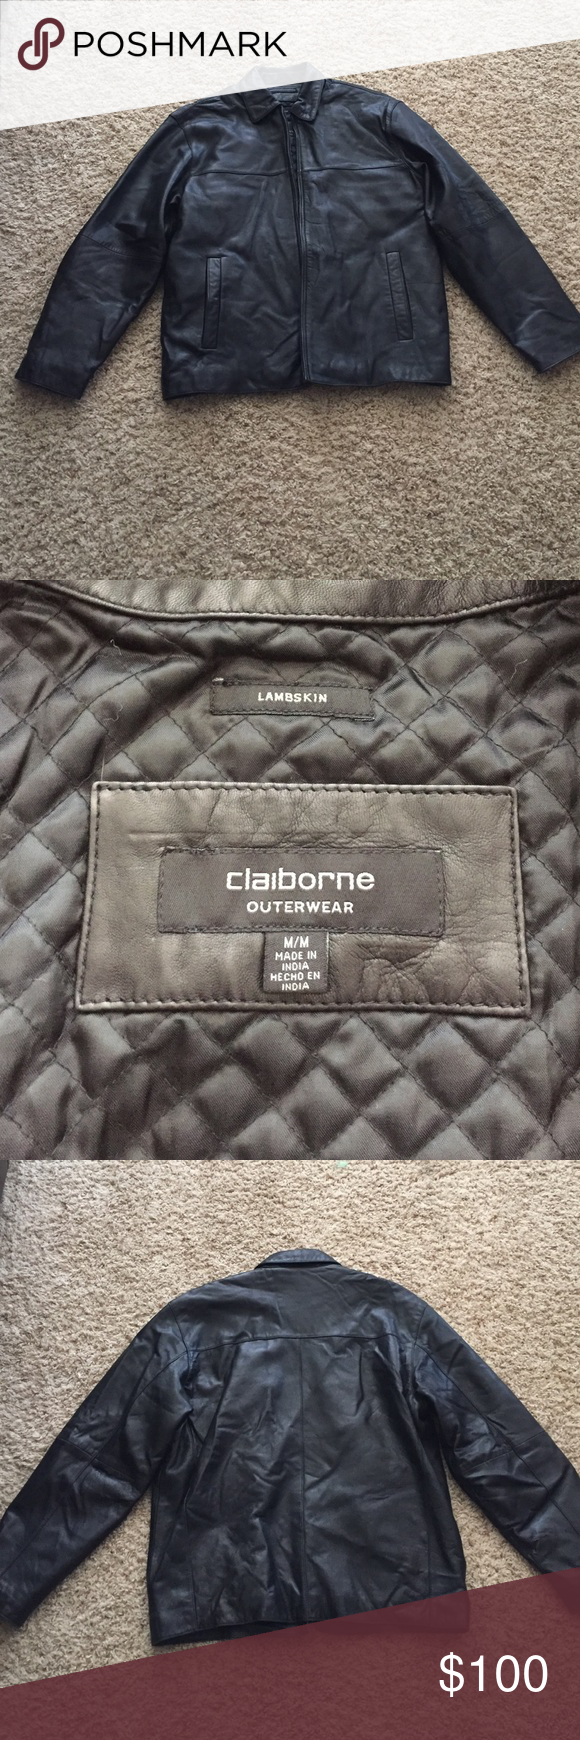 Men's size M leather jacket Men's lambskin leather jacket size M by Clairborne in great condition Claiborne Jackets & Coats